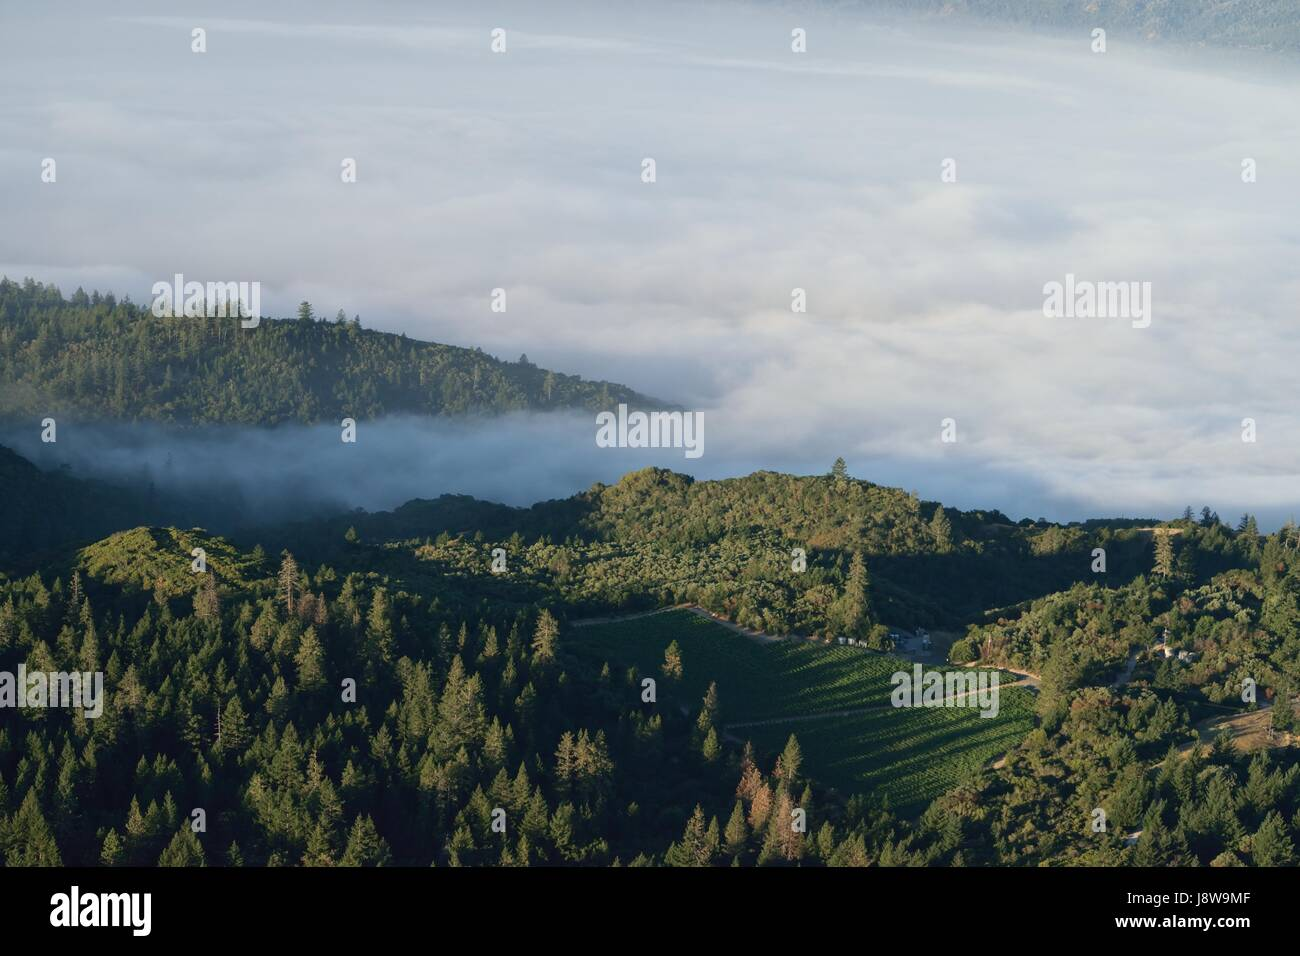 Cool fog in the early morning in Napa Valley, CA - Stock Image